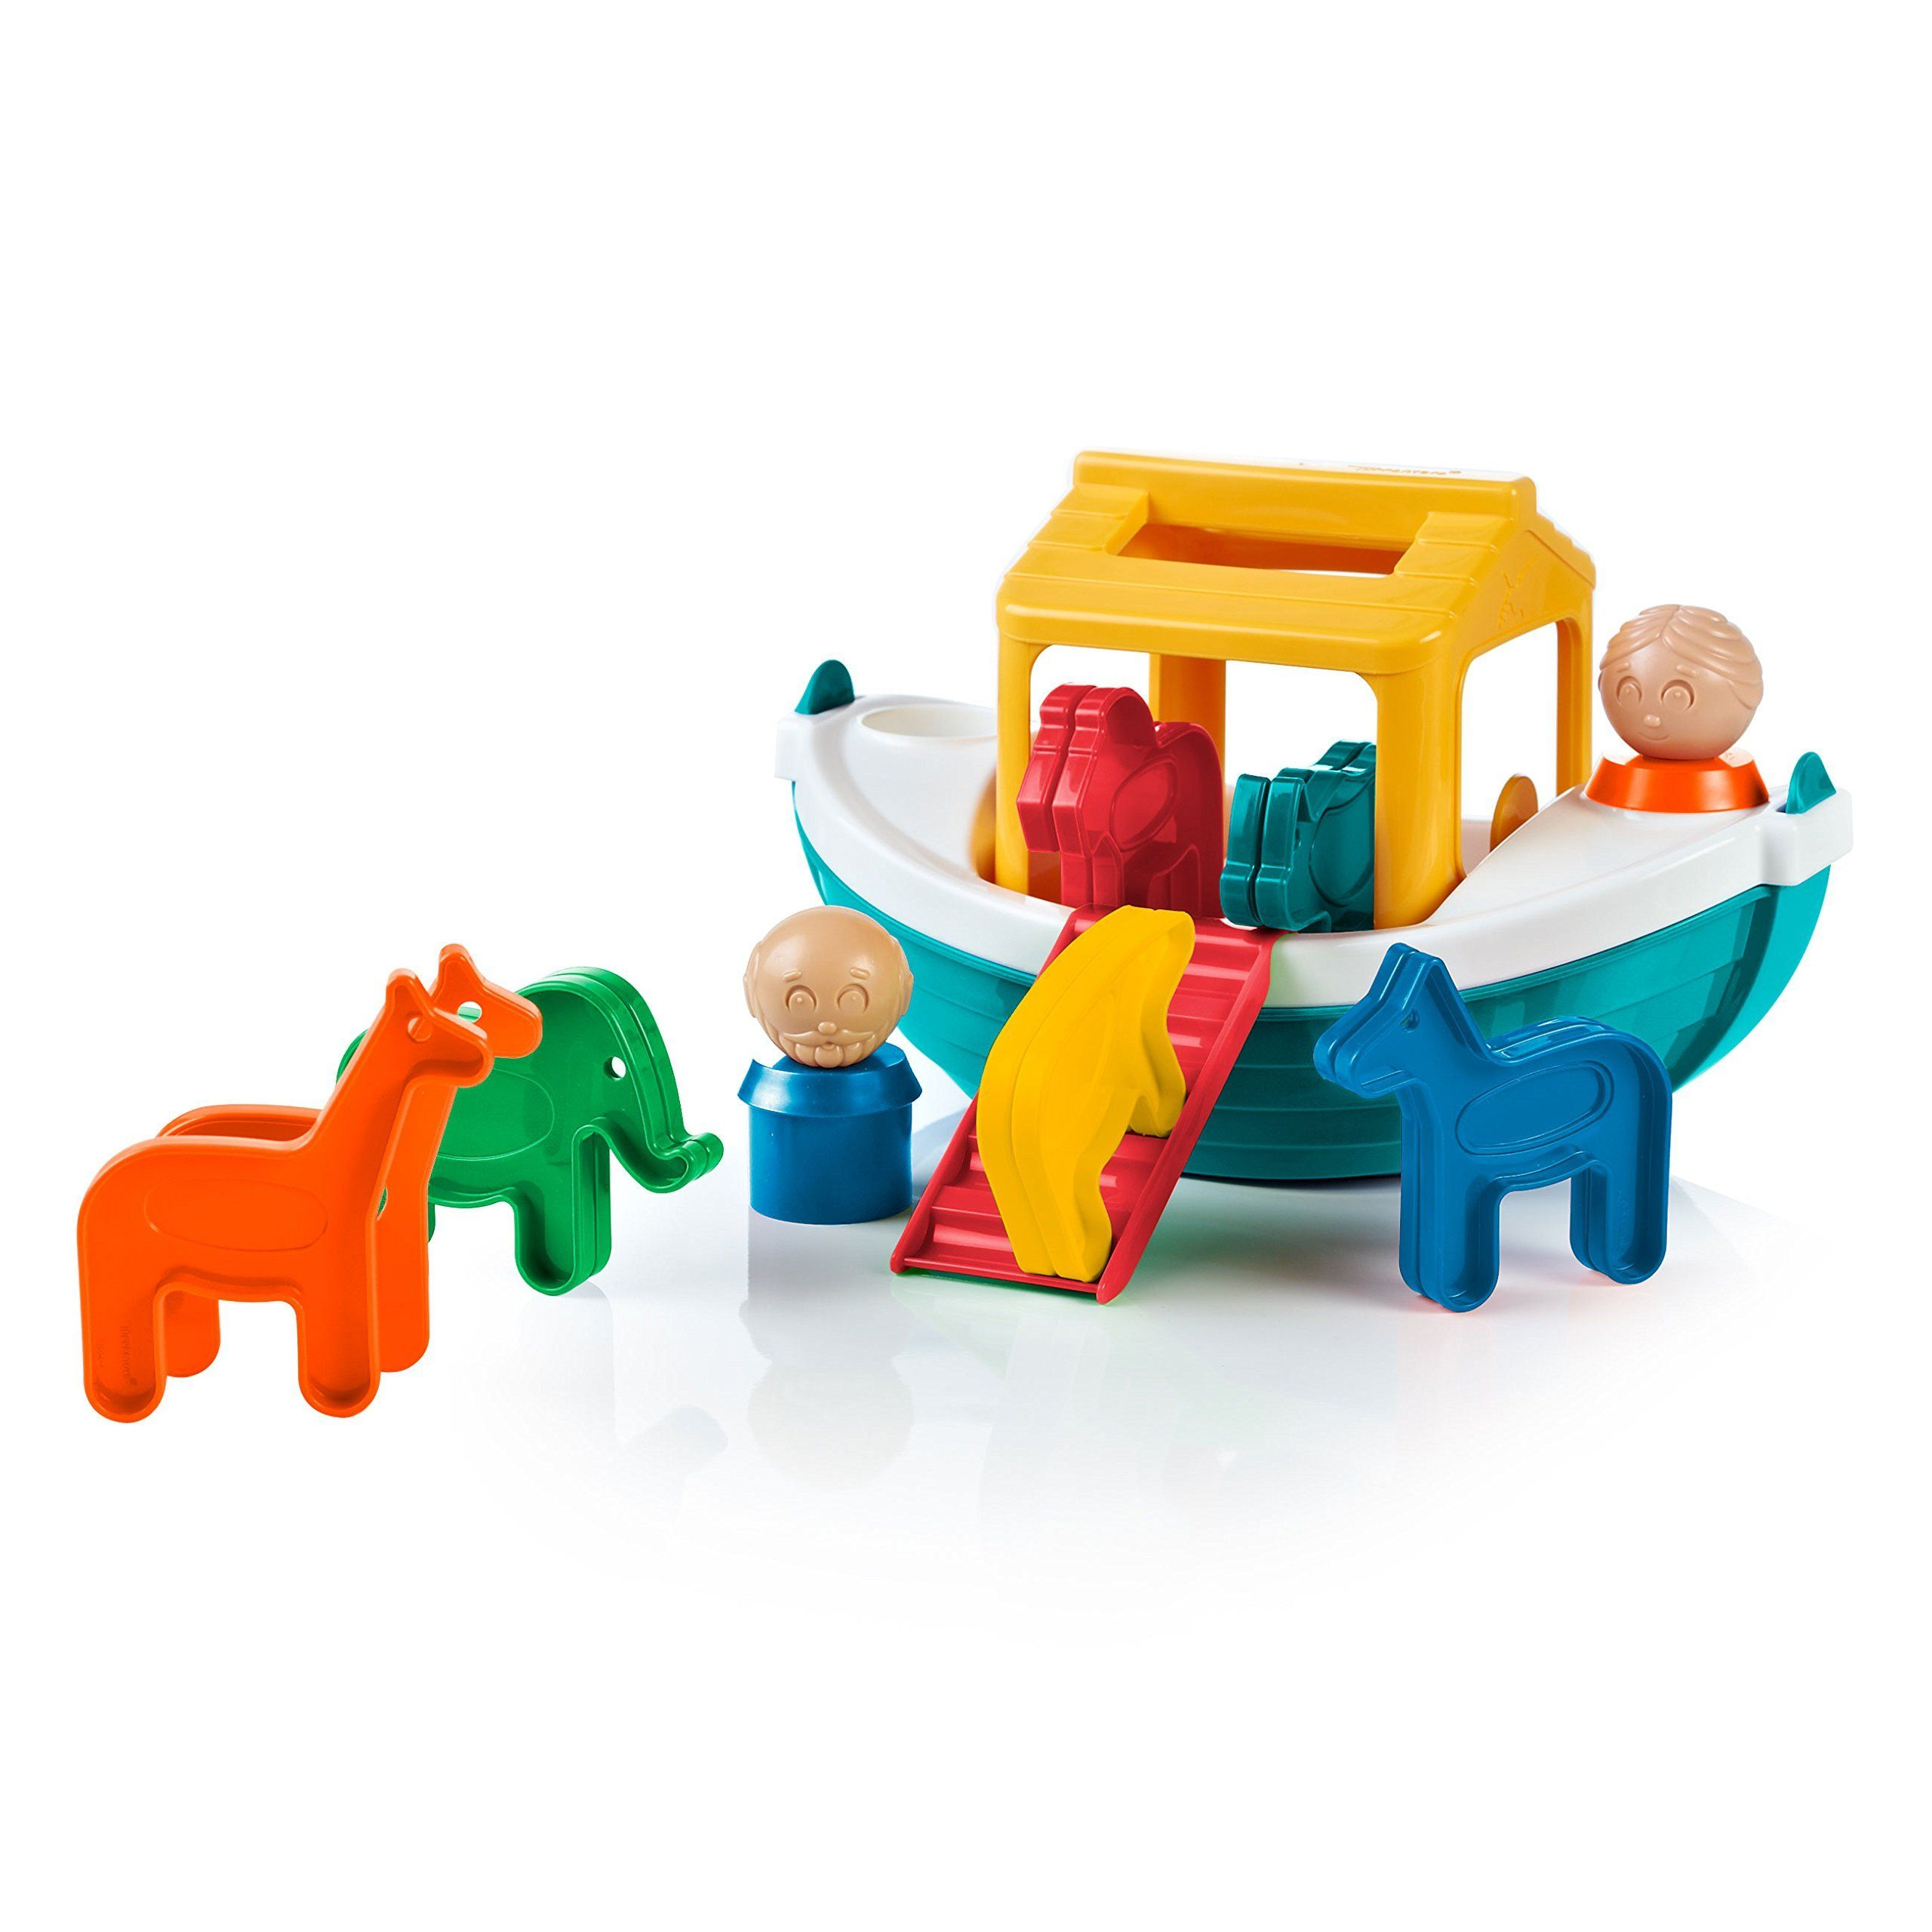 Noahs Ark This Classic Childrens Toy Has Been Absent For